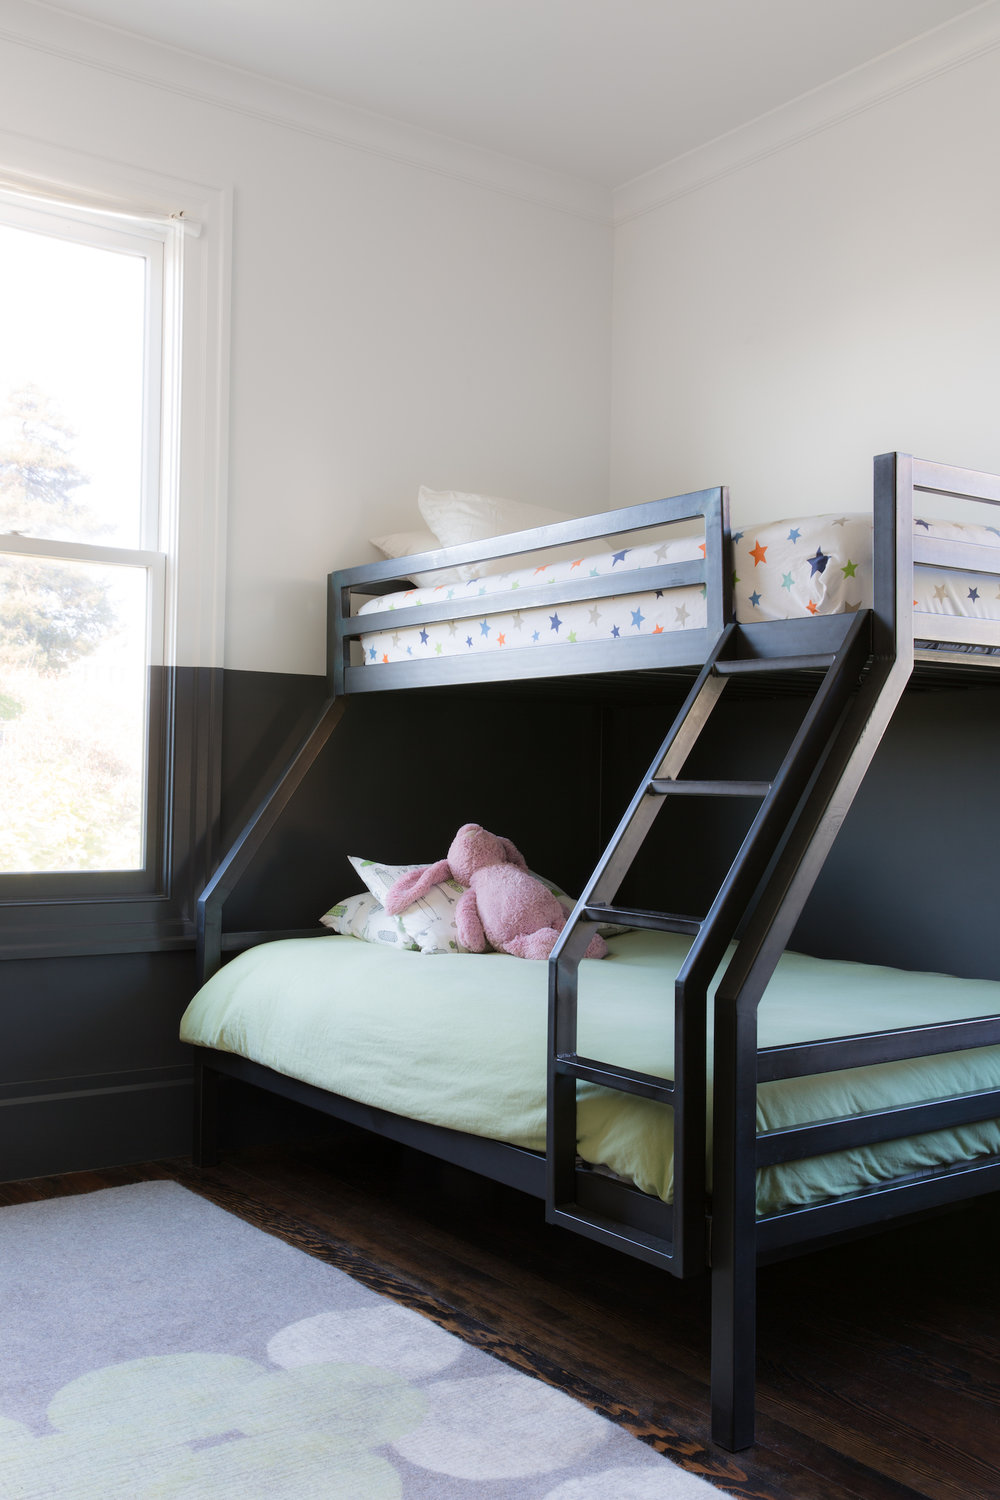 kids room with bunk beds and black and white walls and purple rug and wood flooring.jpg